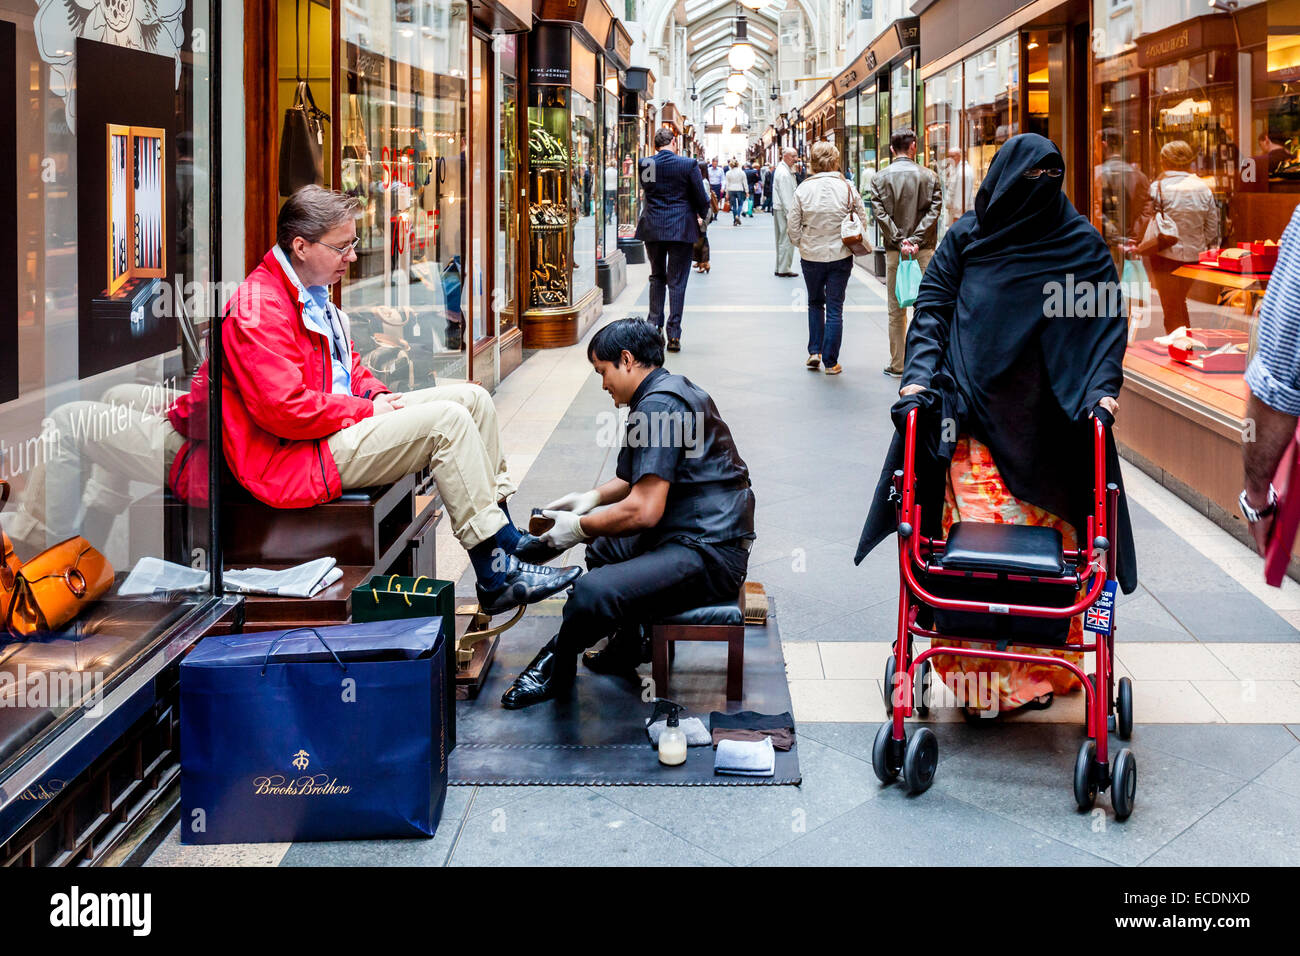 Shoe Shine, Burlington Arcade, London, England - Stock Image